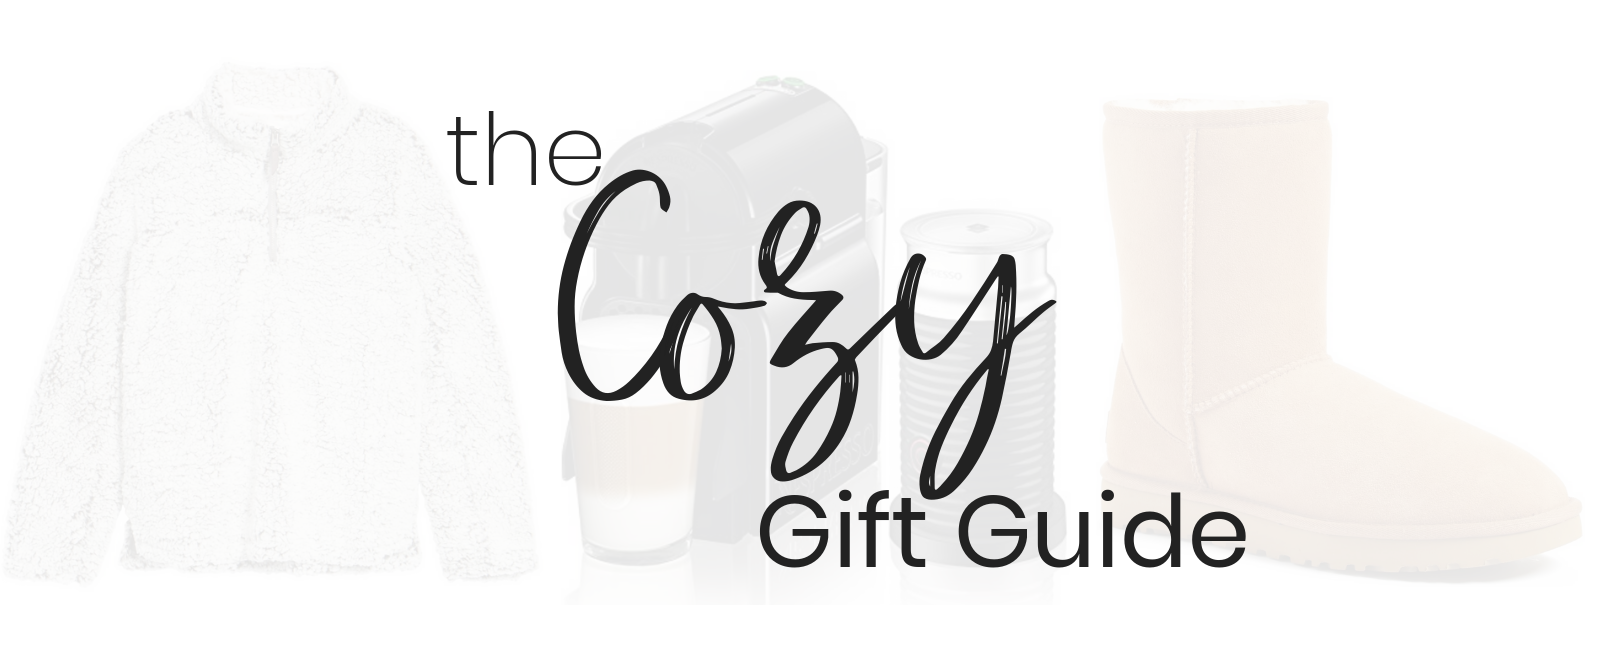 The Cozy Gift Guide